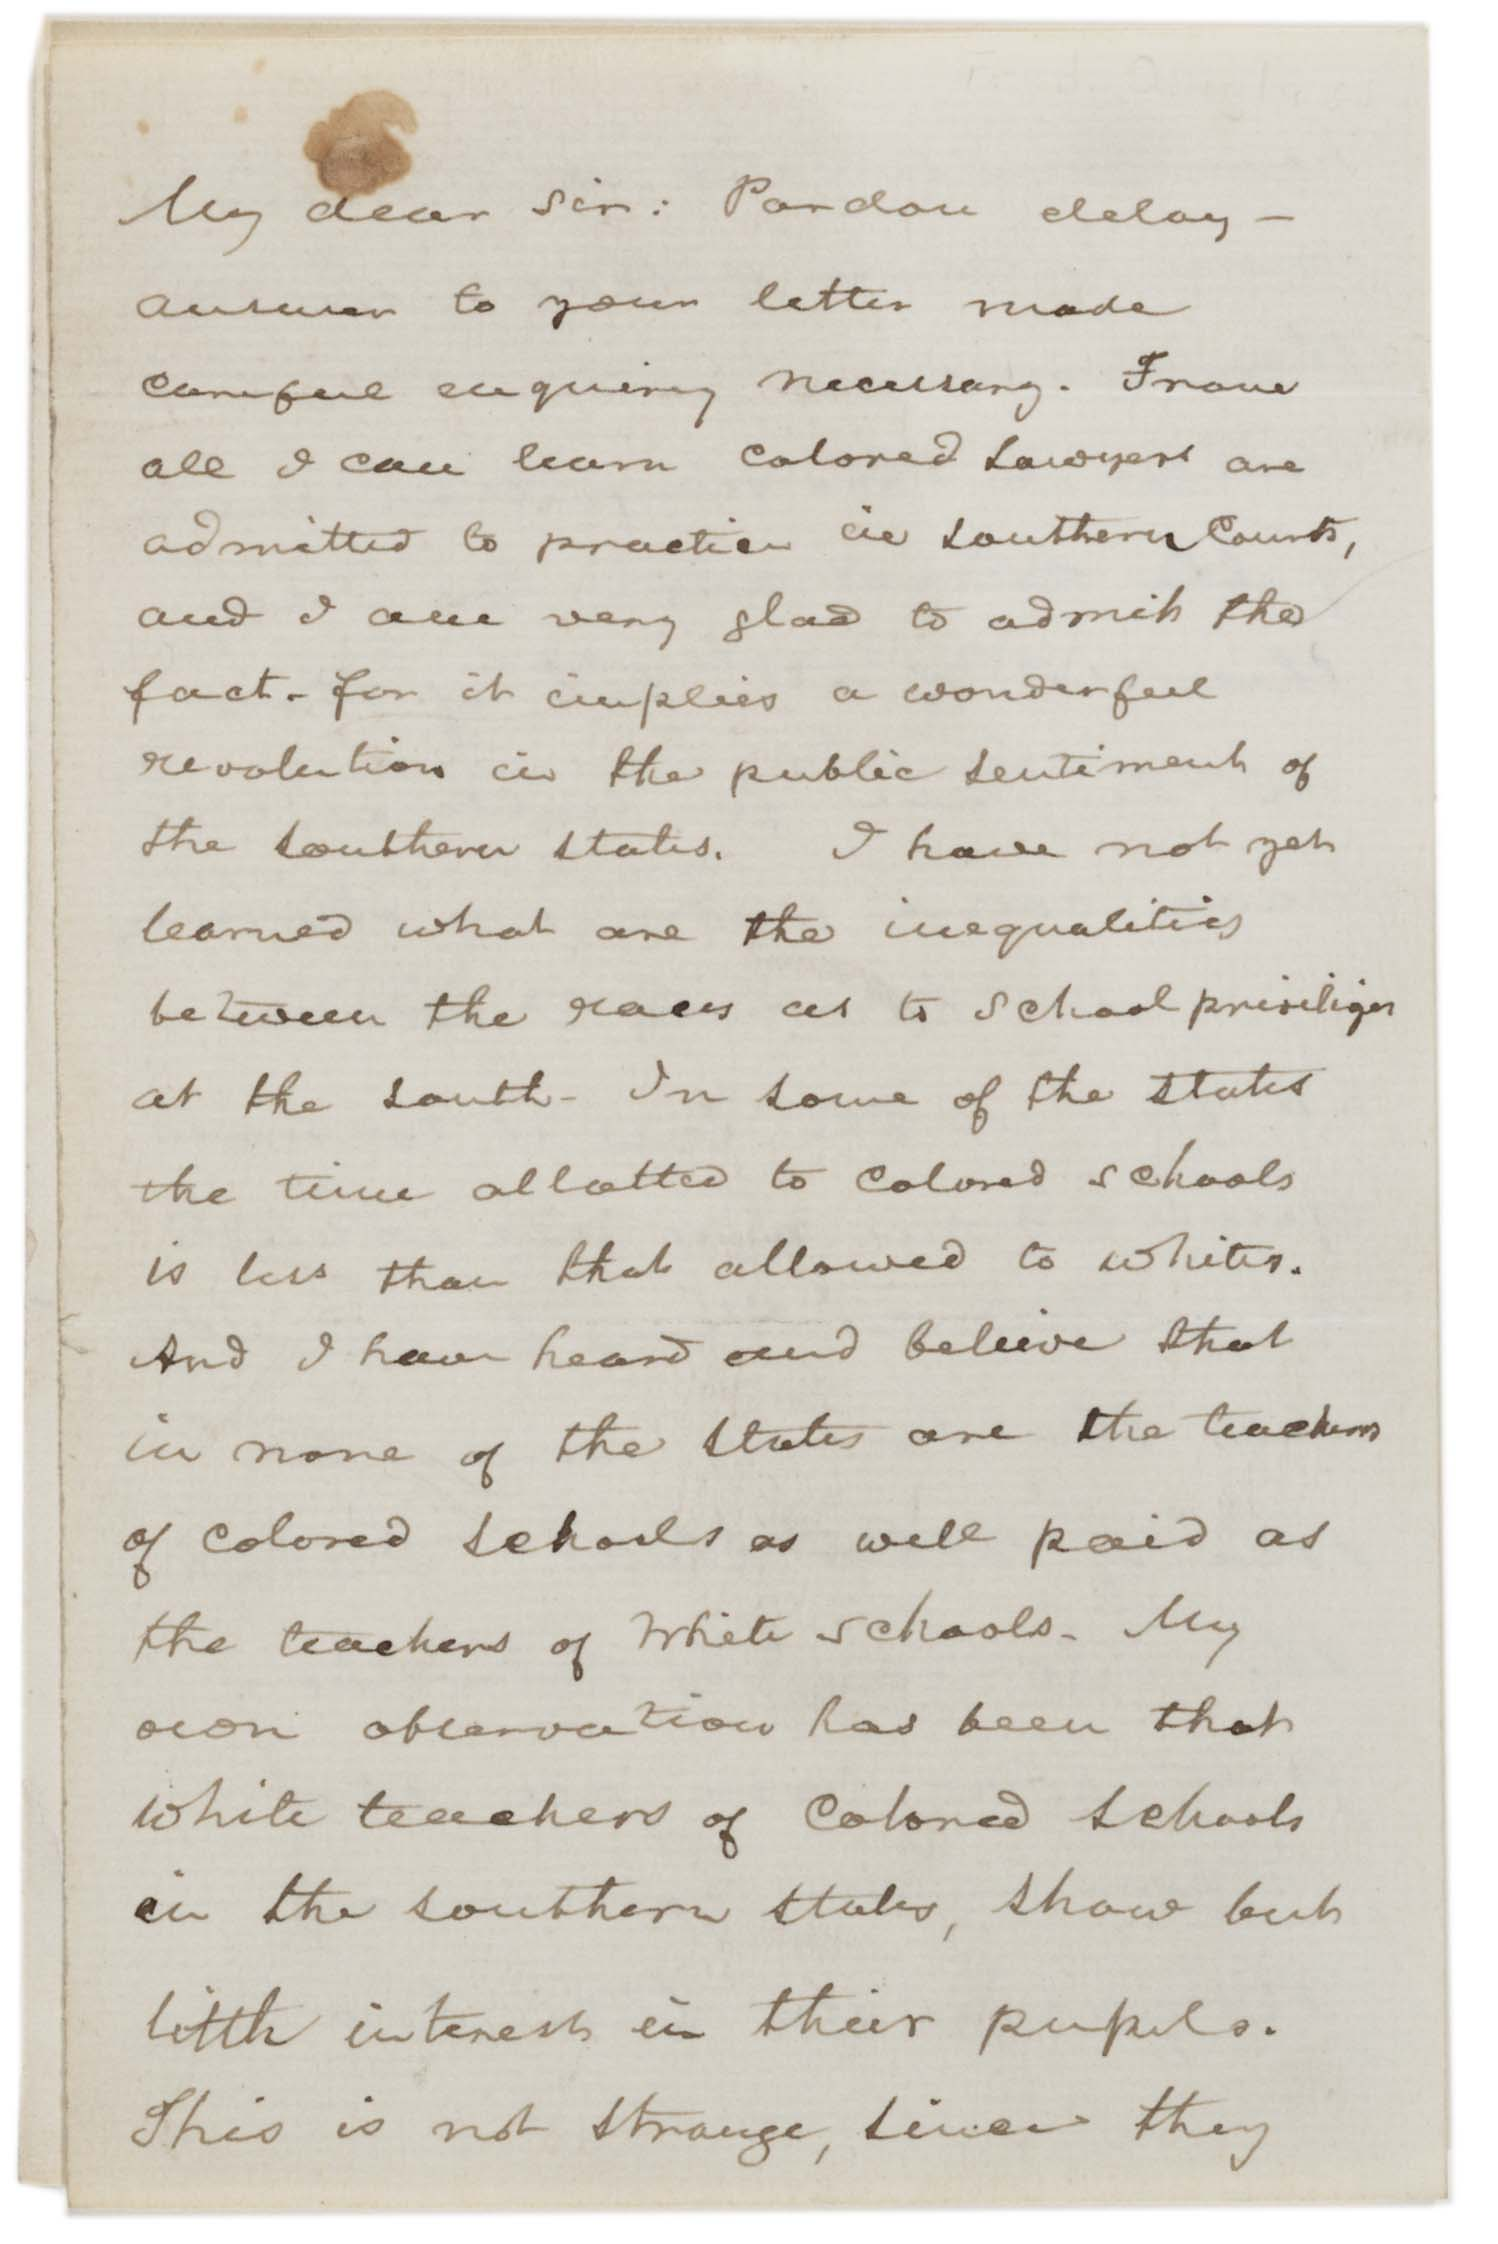 frederick douglass on jim crow the gilder lehrman frederick douglass to unknown recipient 23 1887 gilder lehrman collection